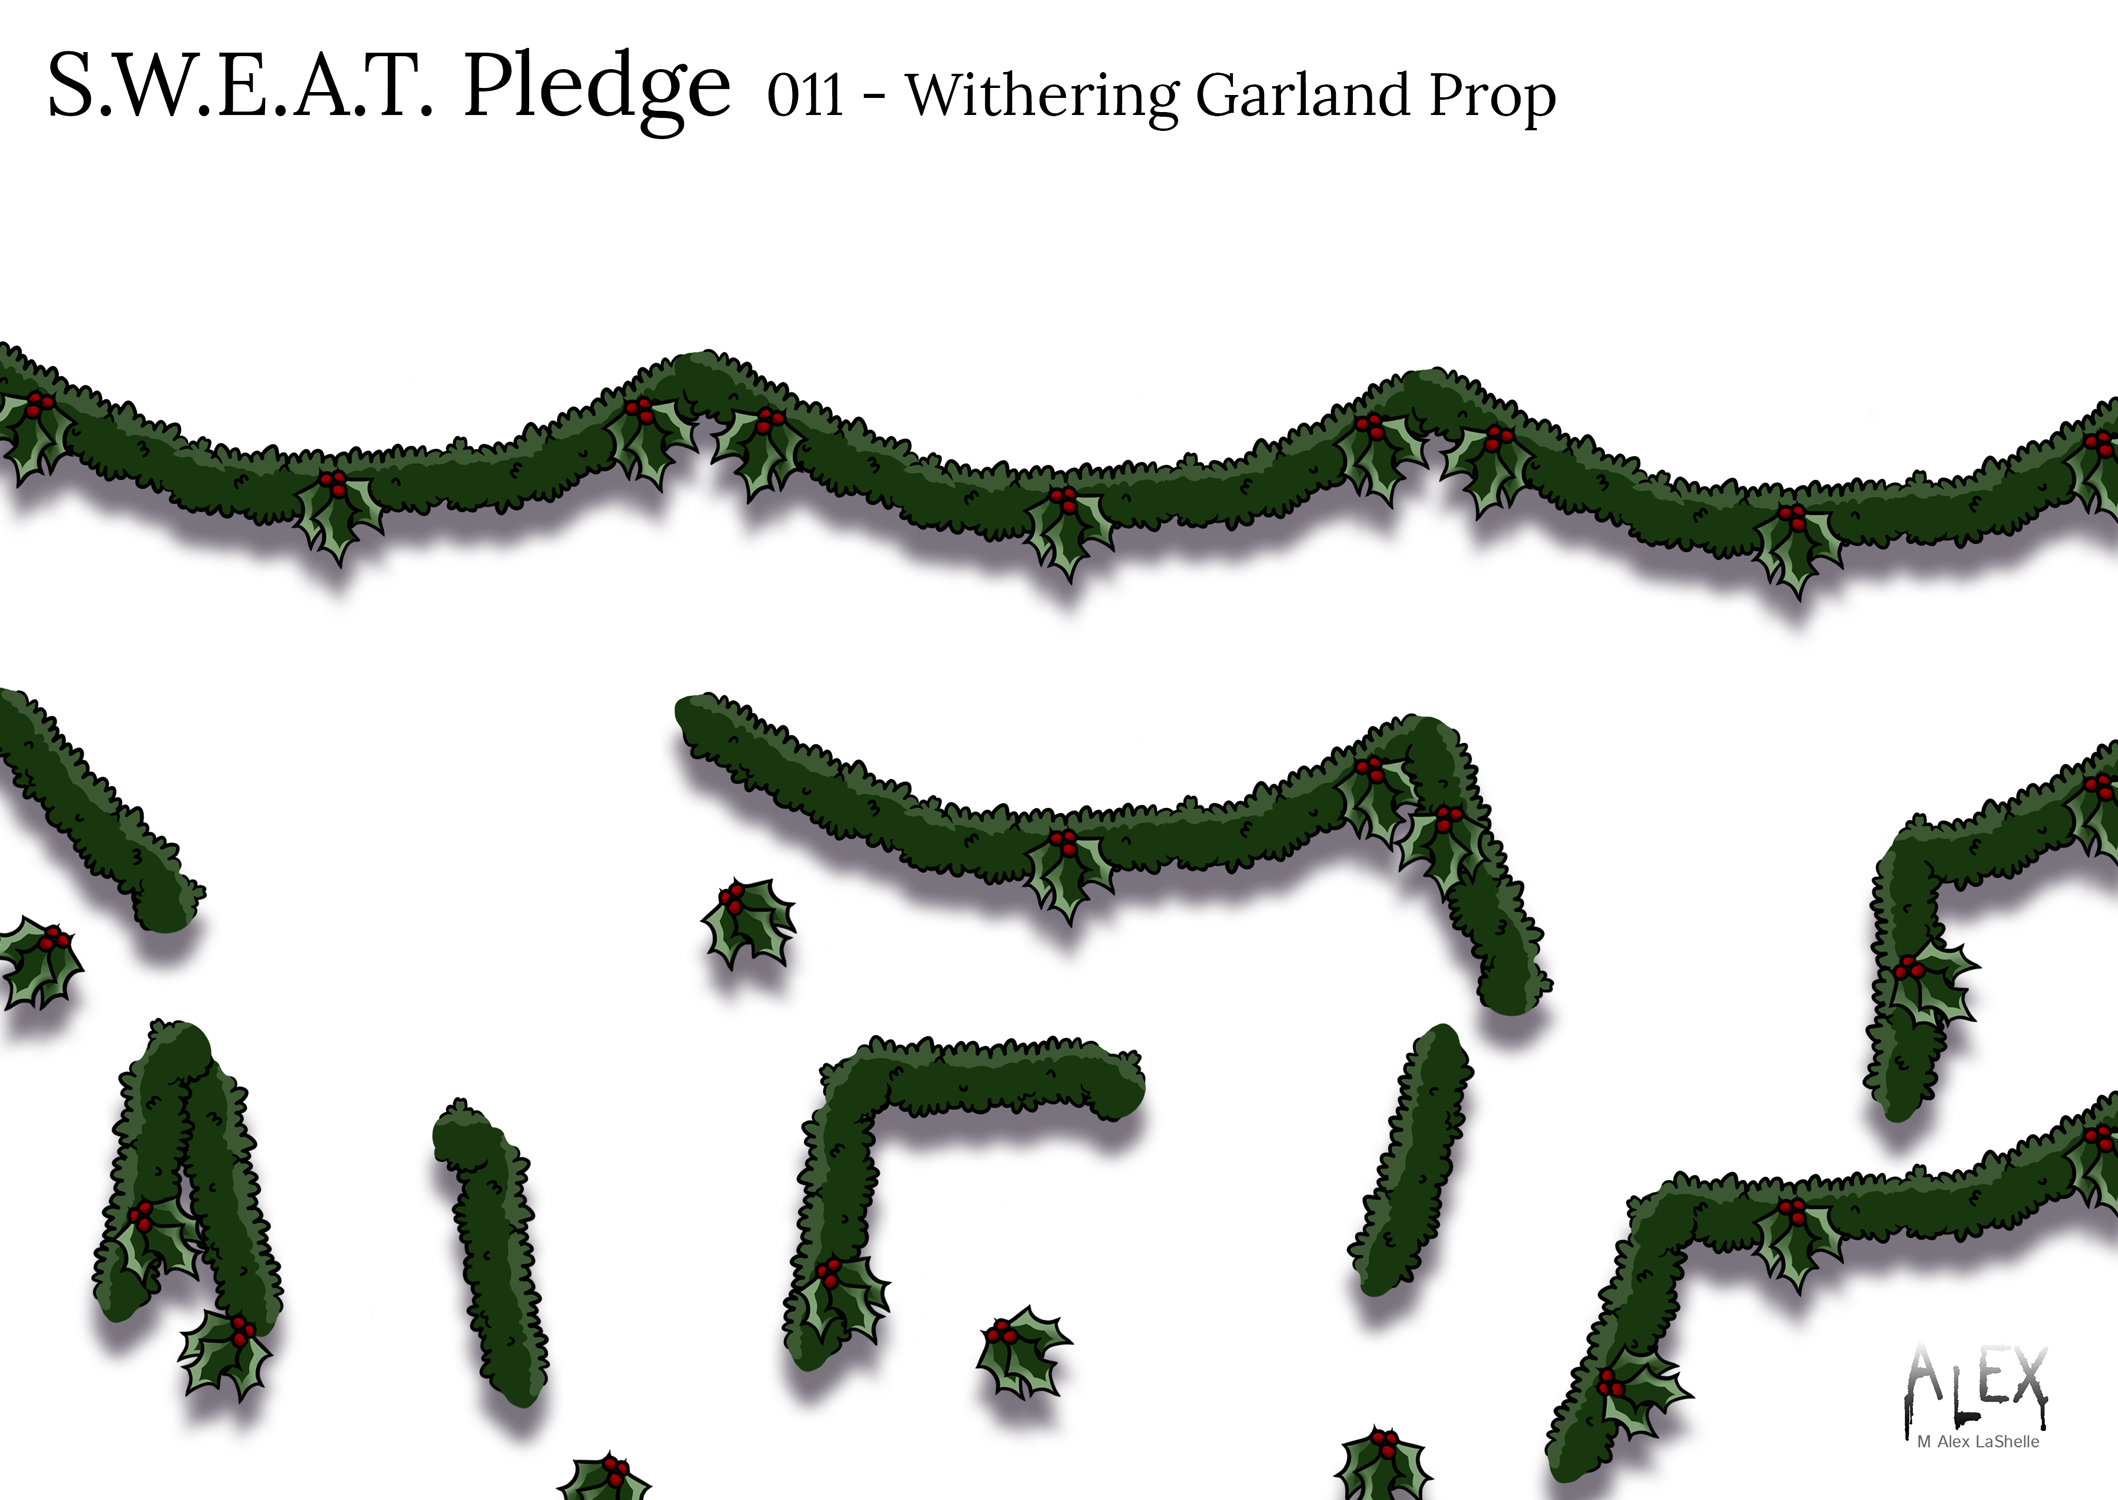 S.W.E.A.T. Pledge Withering Garland